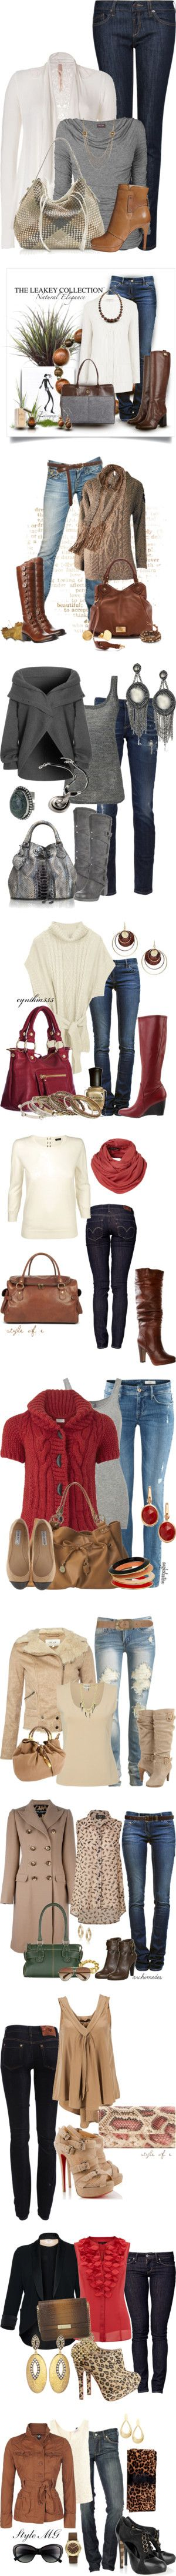 fall fashion ideas